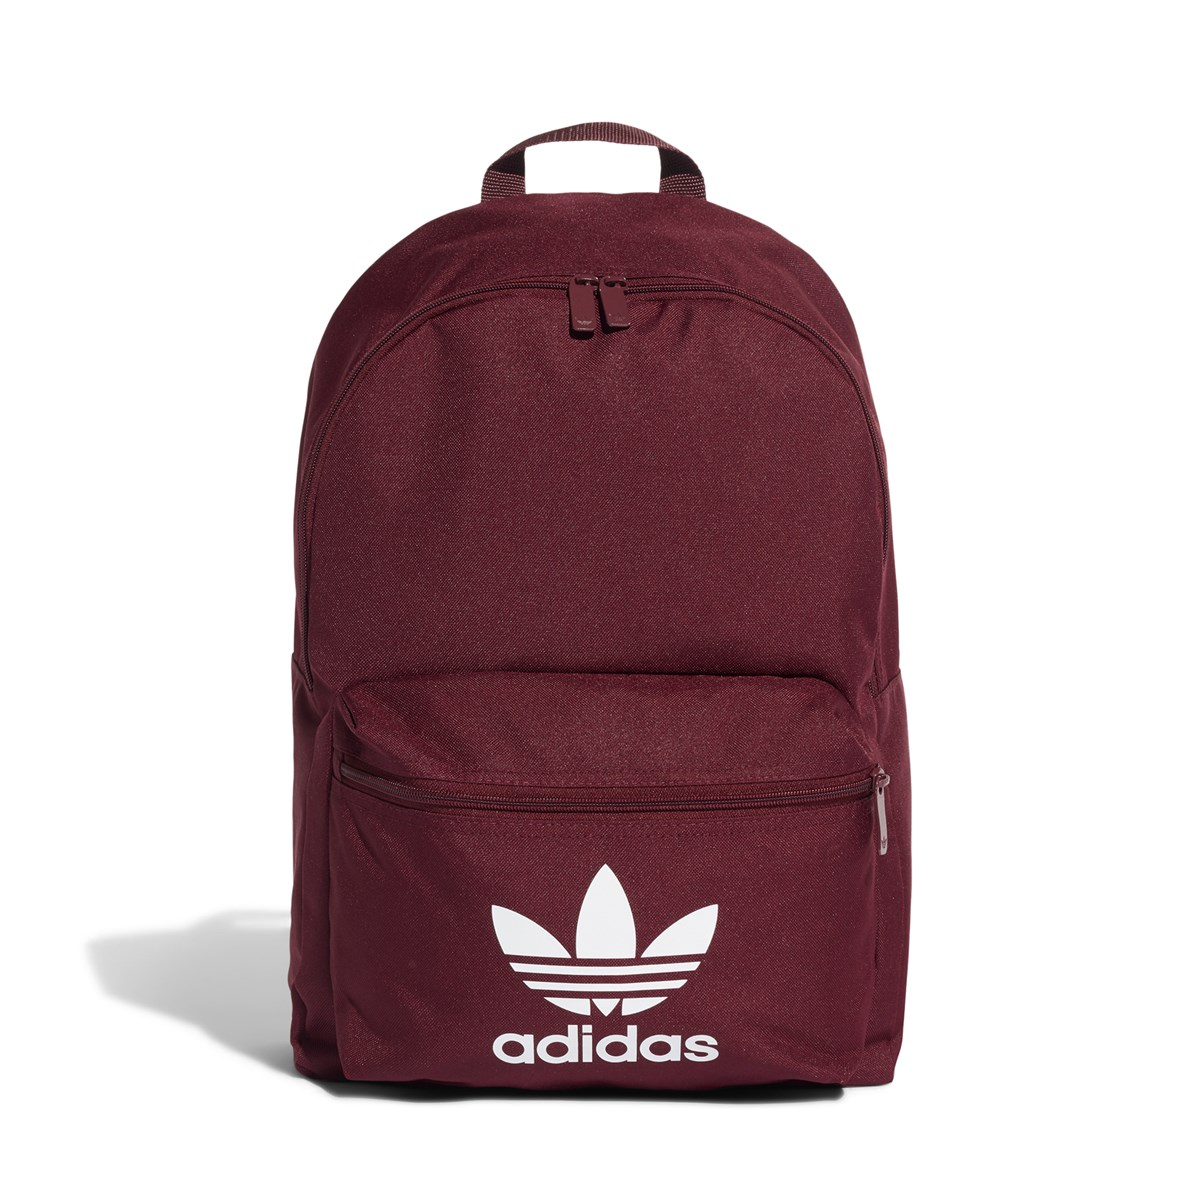 Adicolor Classic Backpack in Dark Red